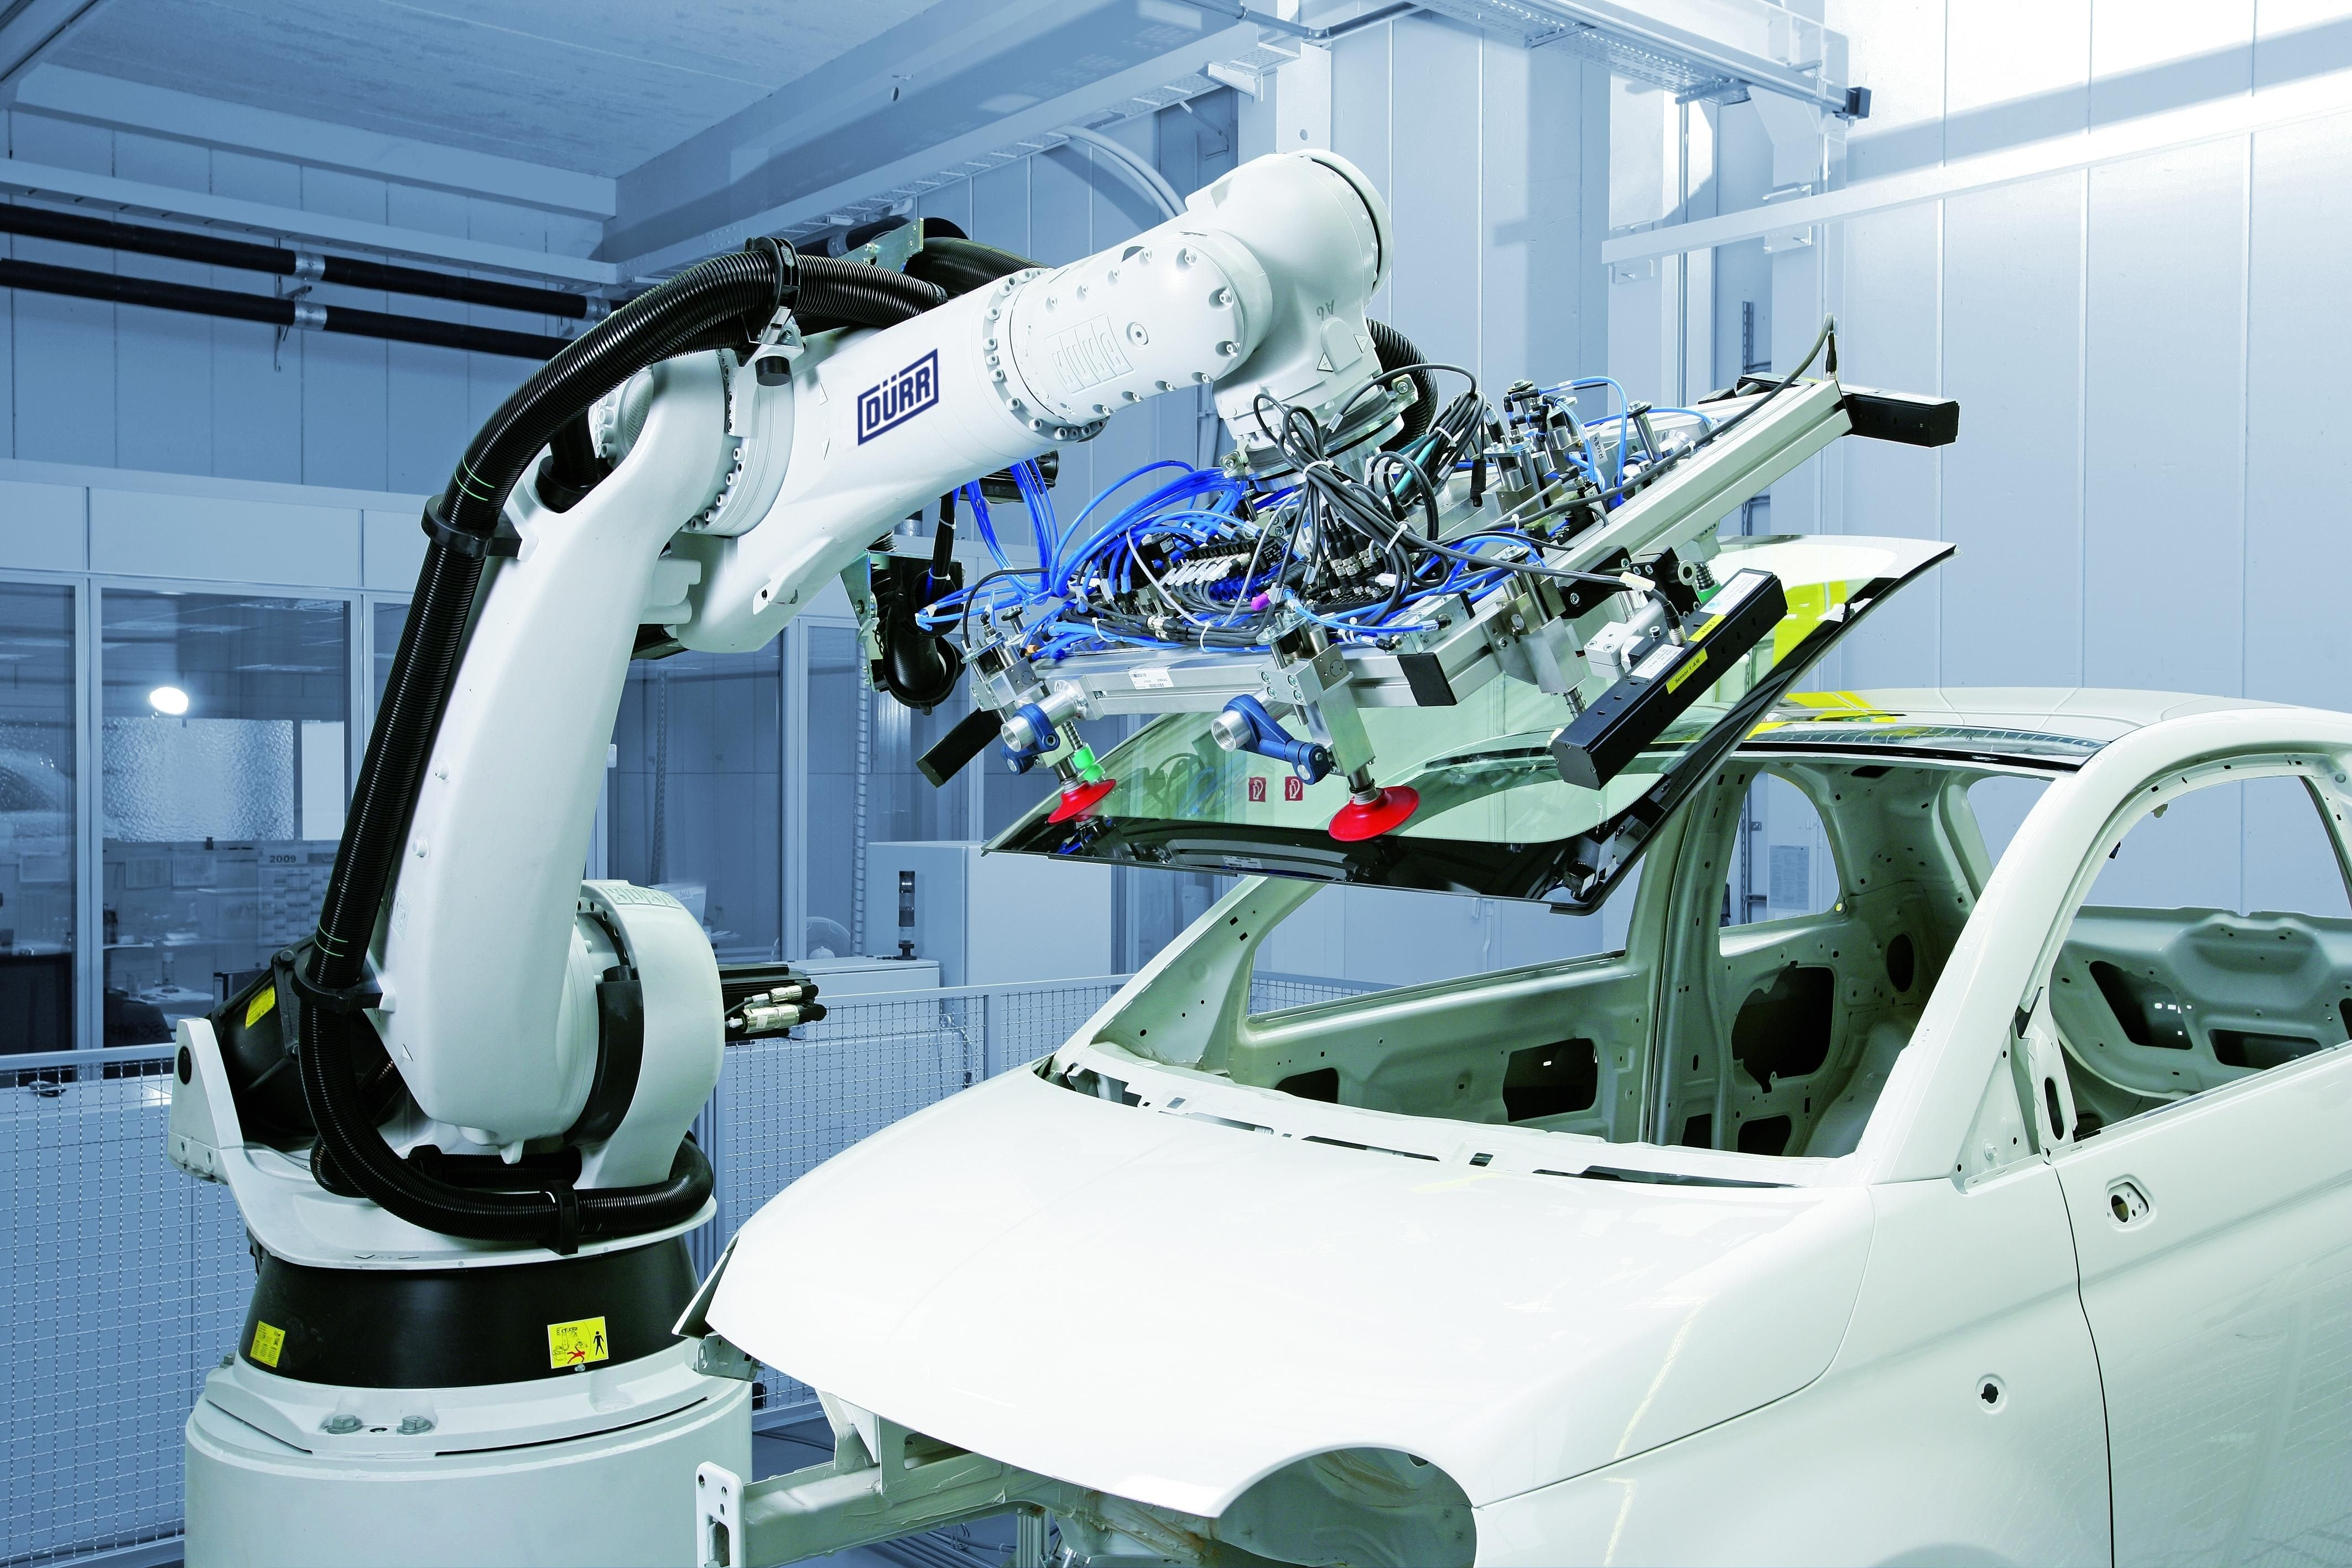 US auto industry buys half of all industrial robots, says IFR